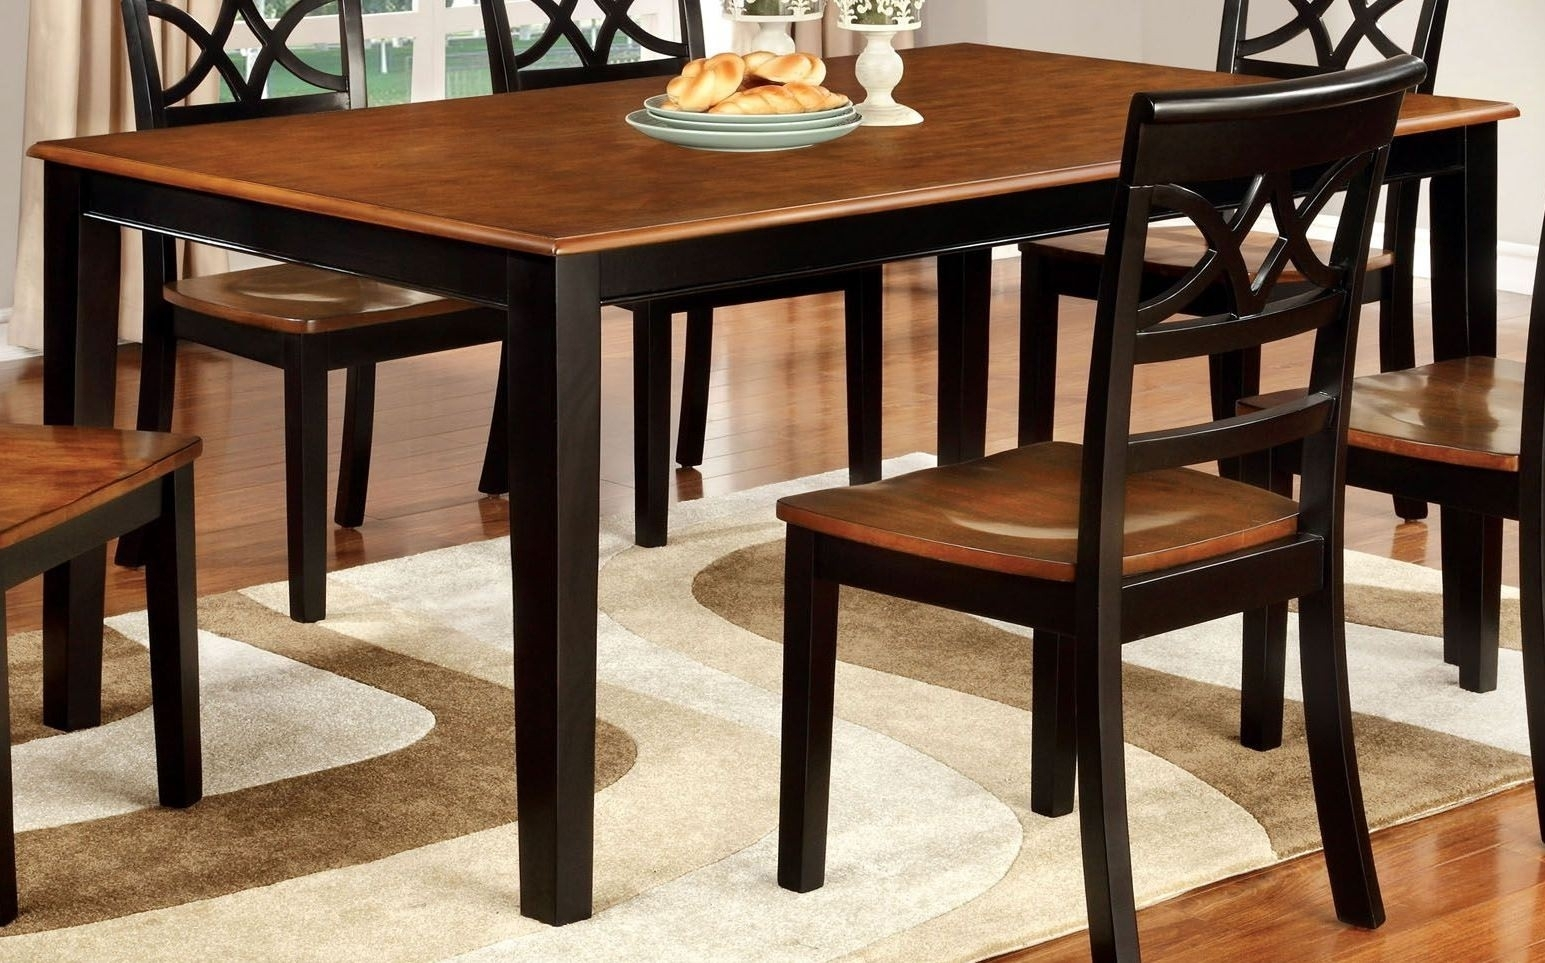 Furniture Of America Torrington Black And Cherry Rectangular In Most Popular Craftsman 7 Piece Rectangle Extension Dining Sets With Arm & Side Chairs (Image 6 of 20)